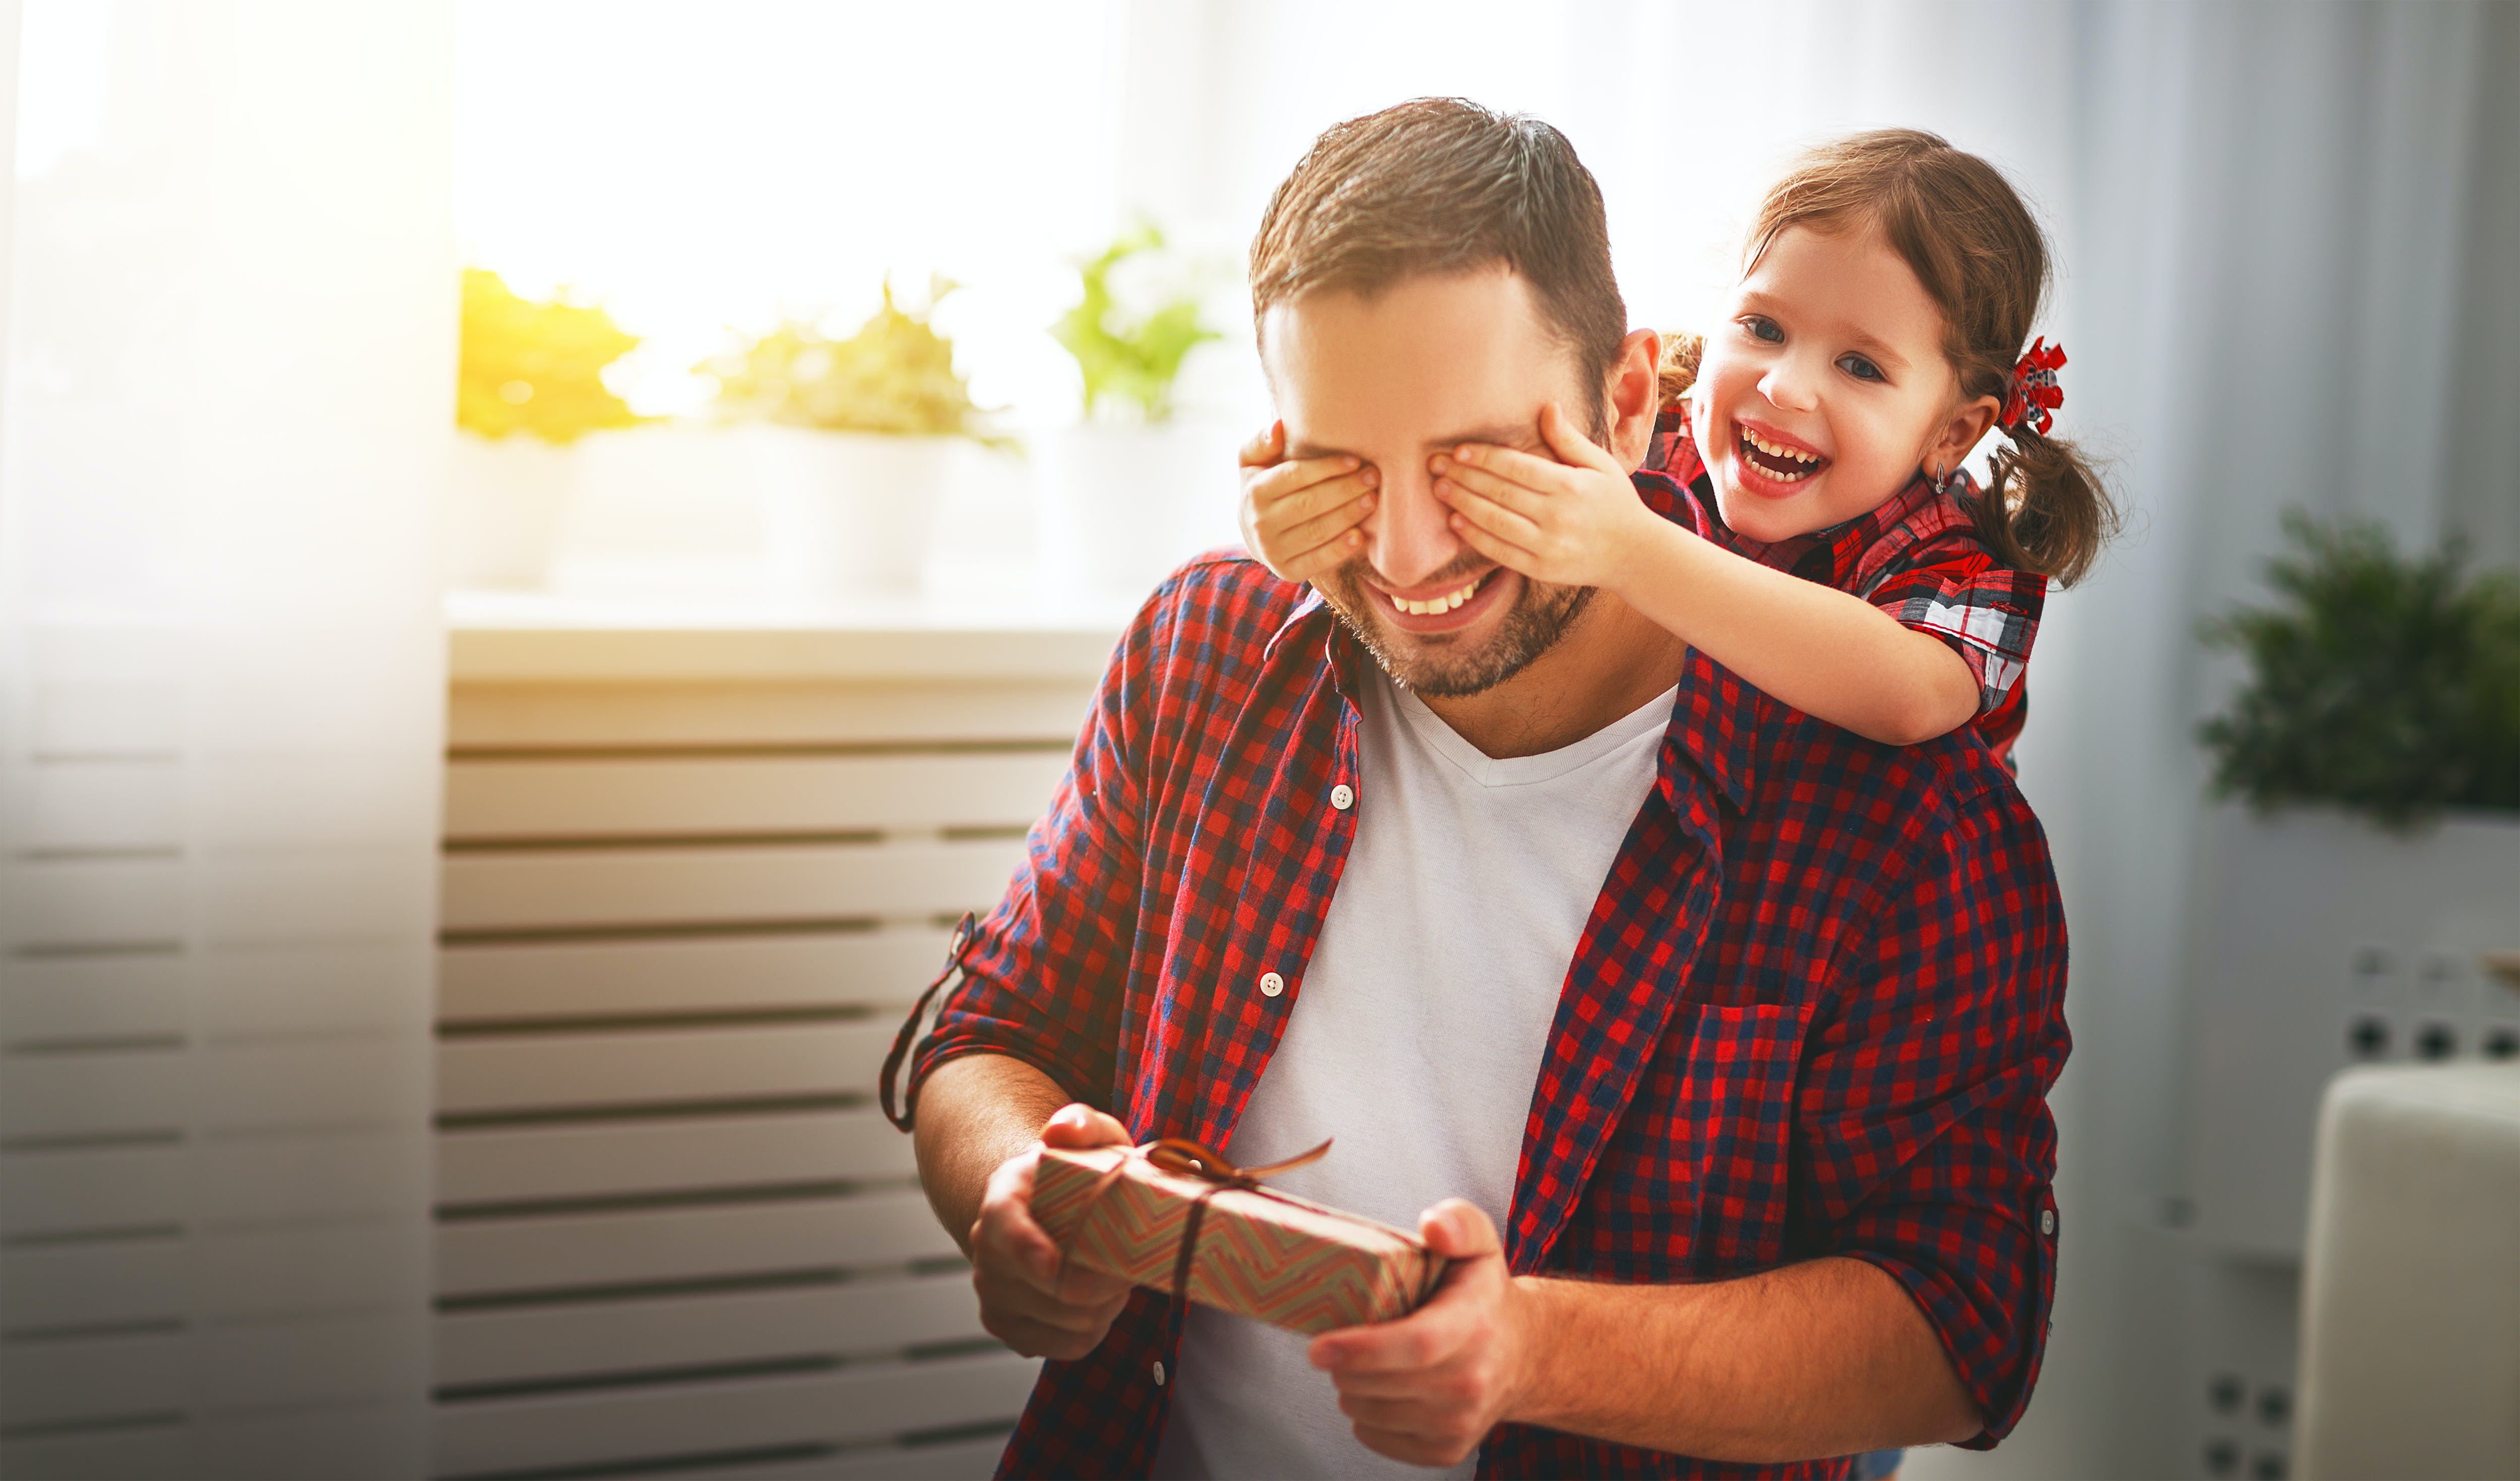 fathers day 123rf stock photo